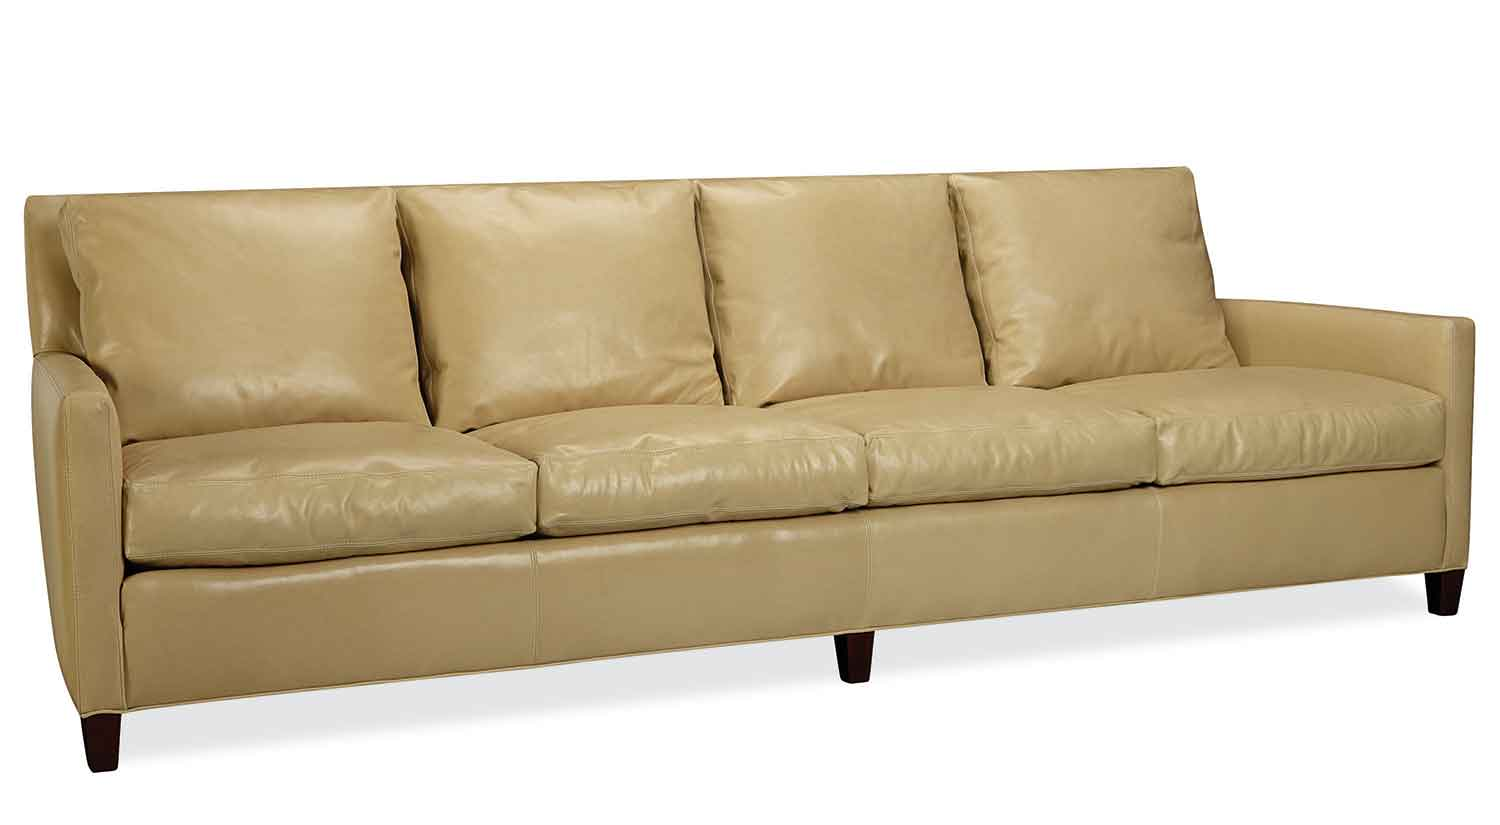 sofa 4 seater chesterfield tufted scroll arm by tribecca home circle furniture maddie seat long sofas boston